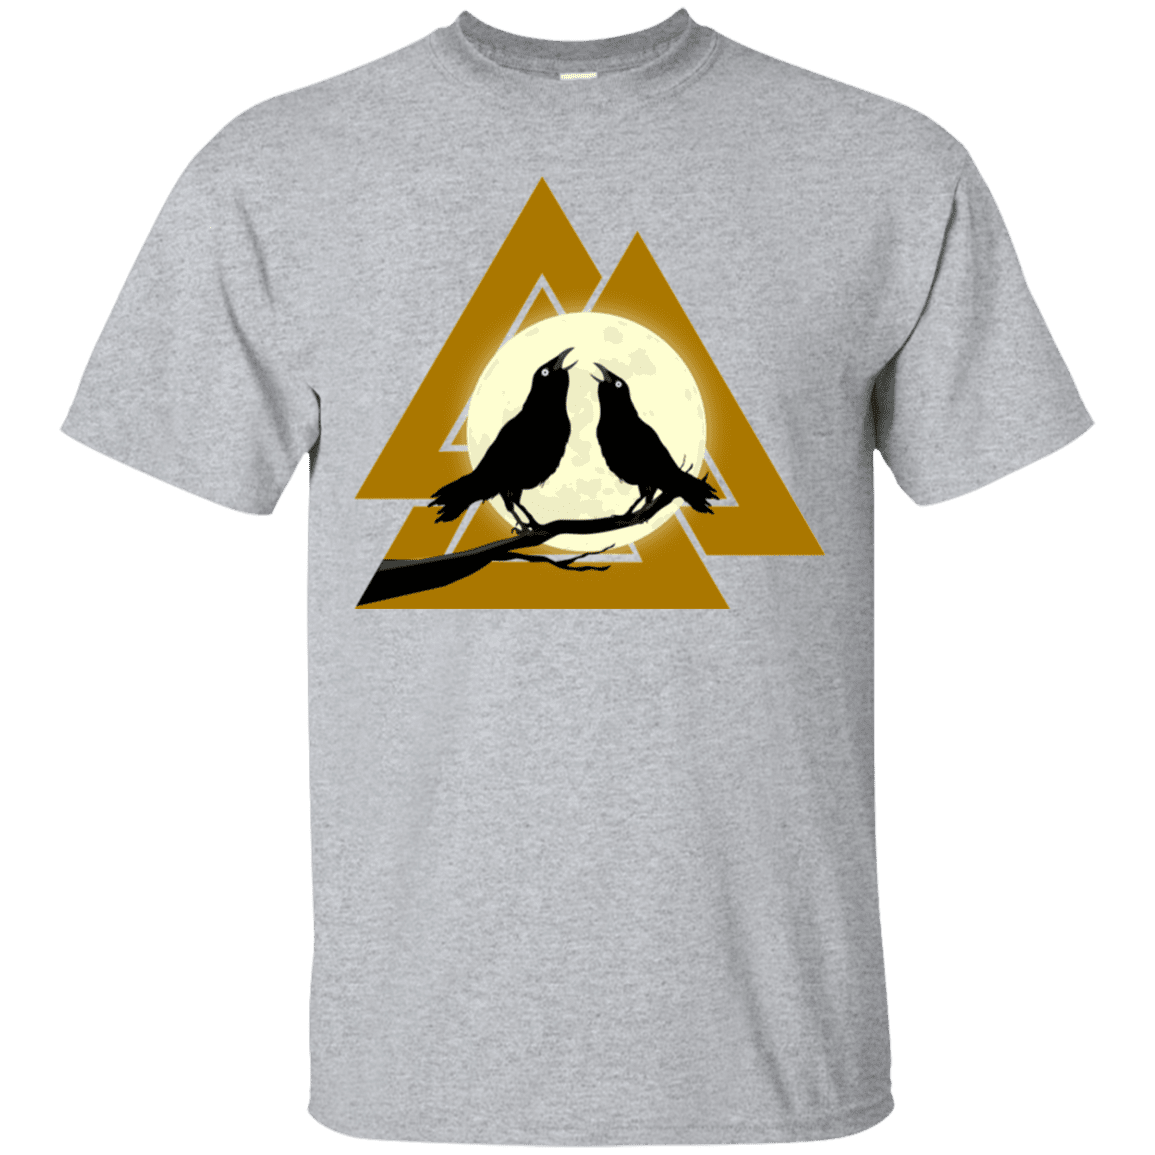 Valknut Norse Sports Grey  T-Shirt on a white background